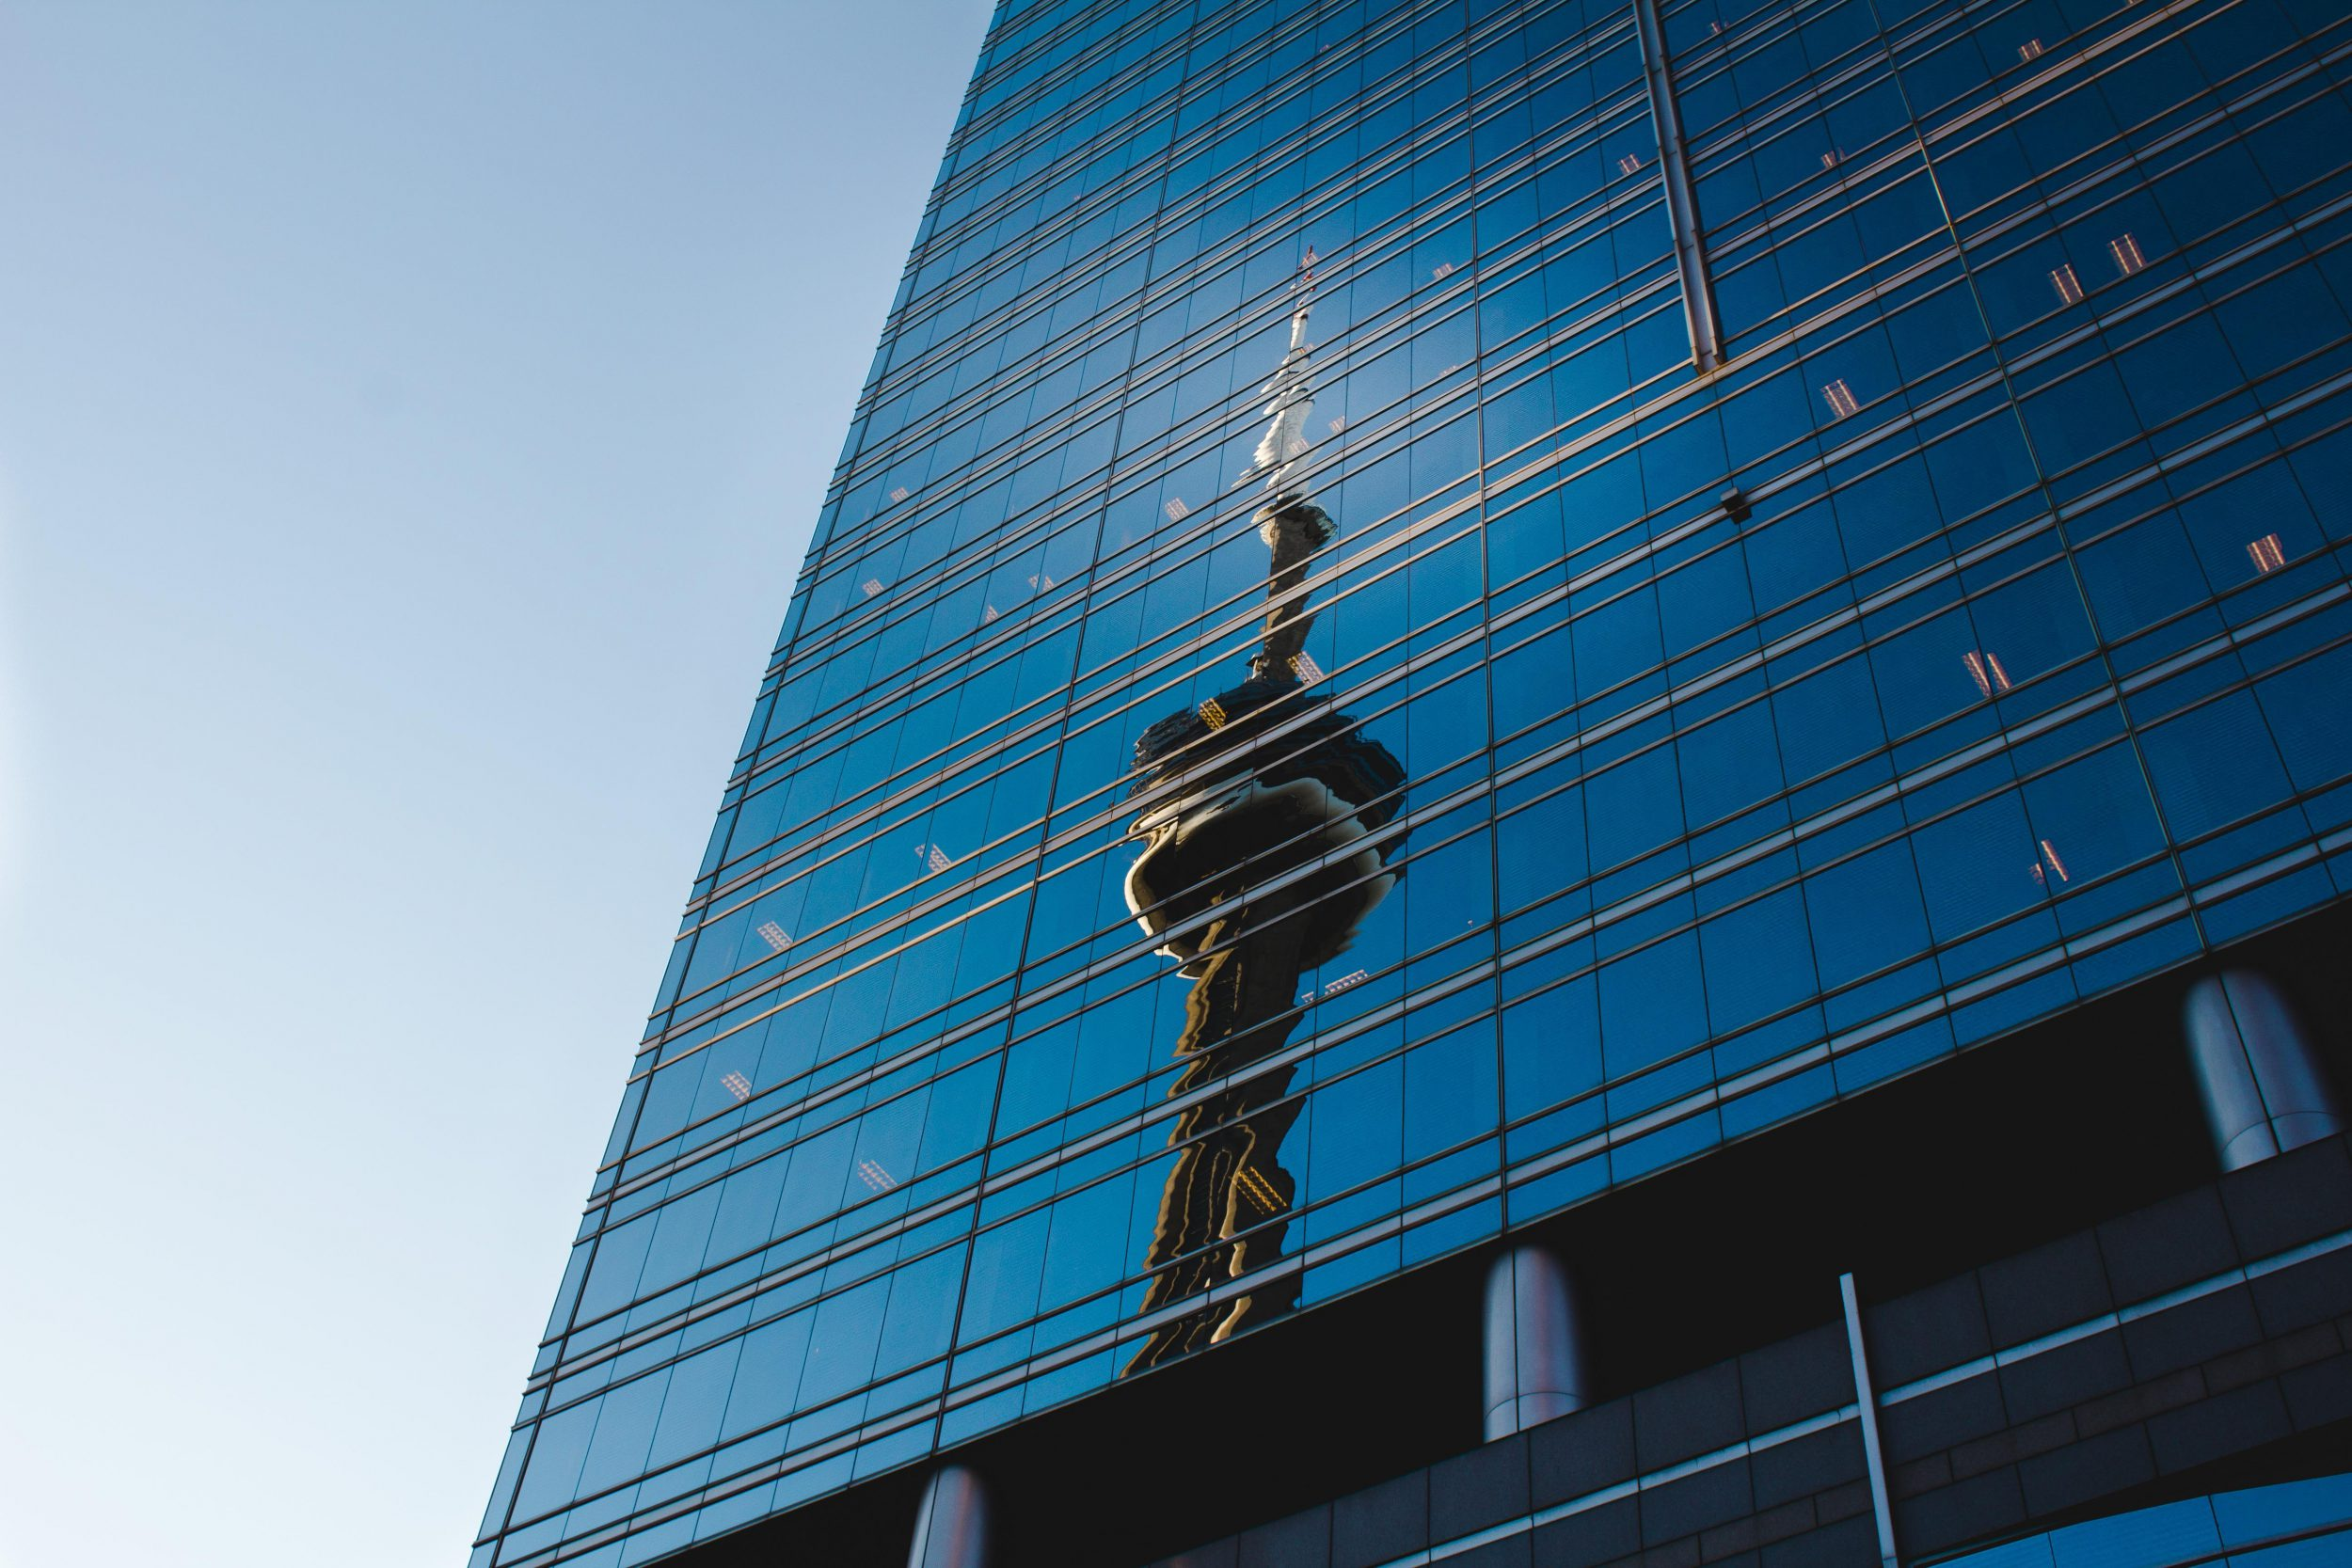 CN tower reflected on a glass building